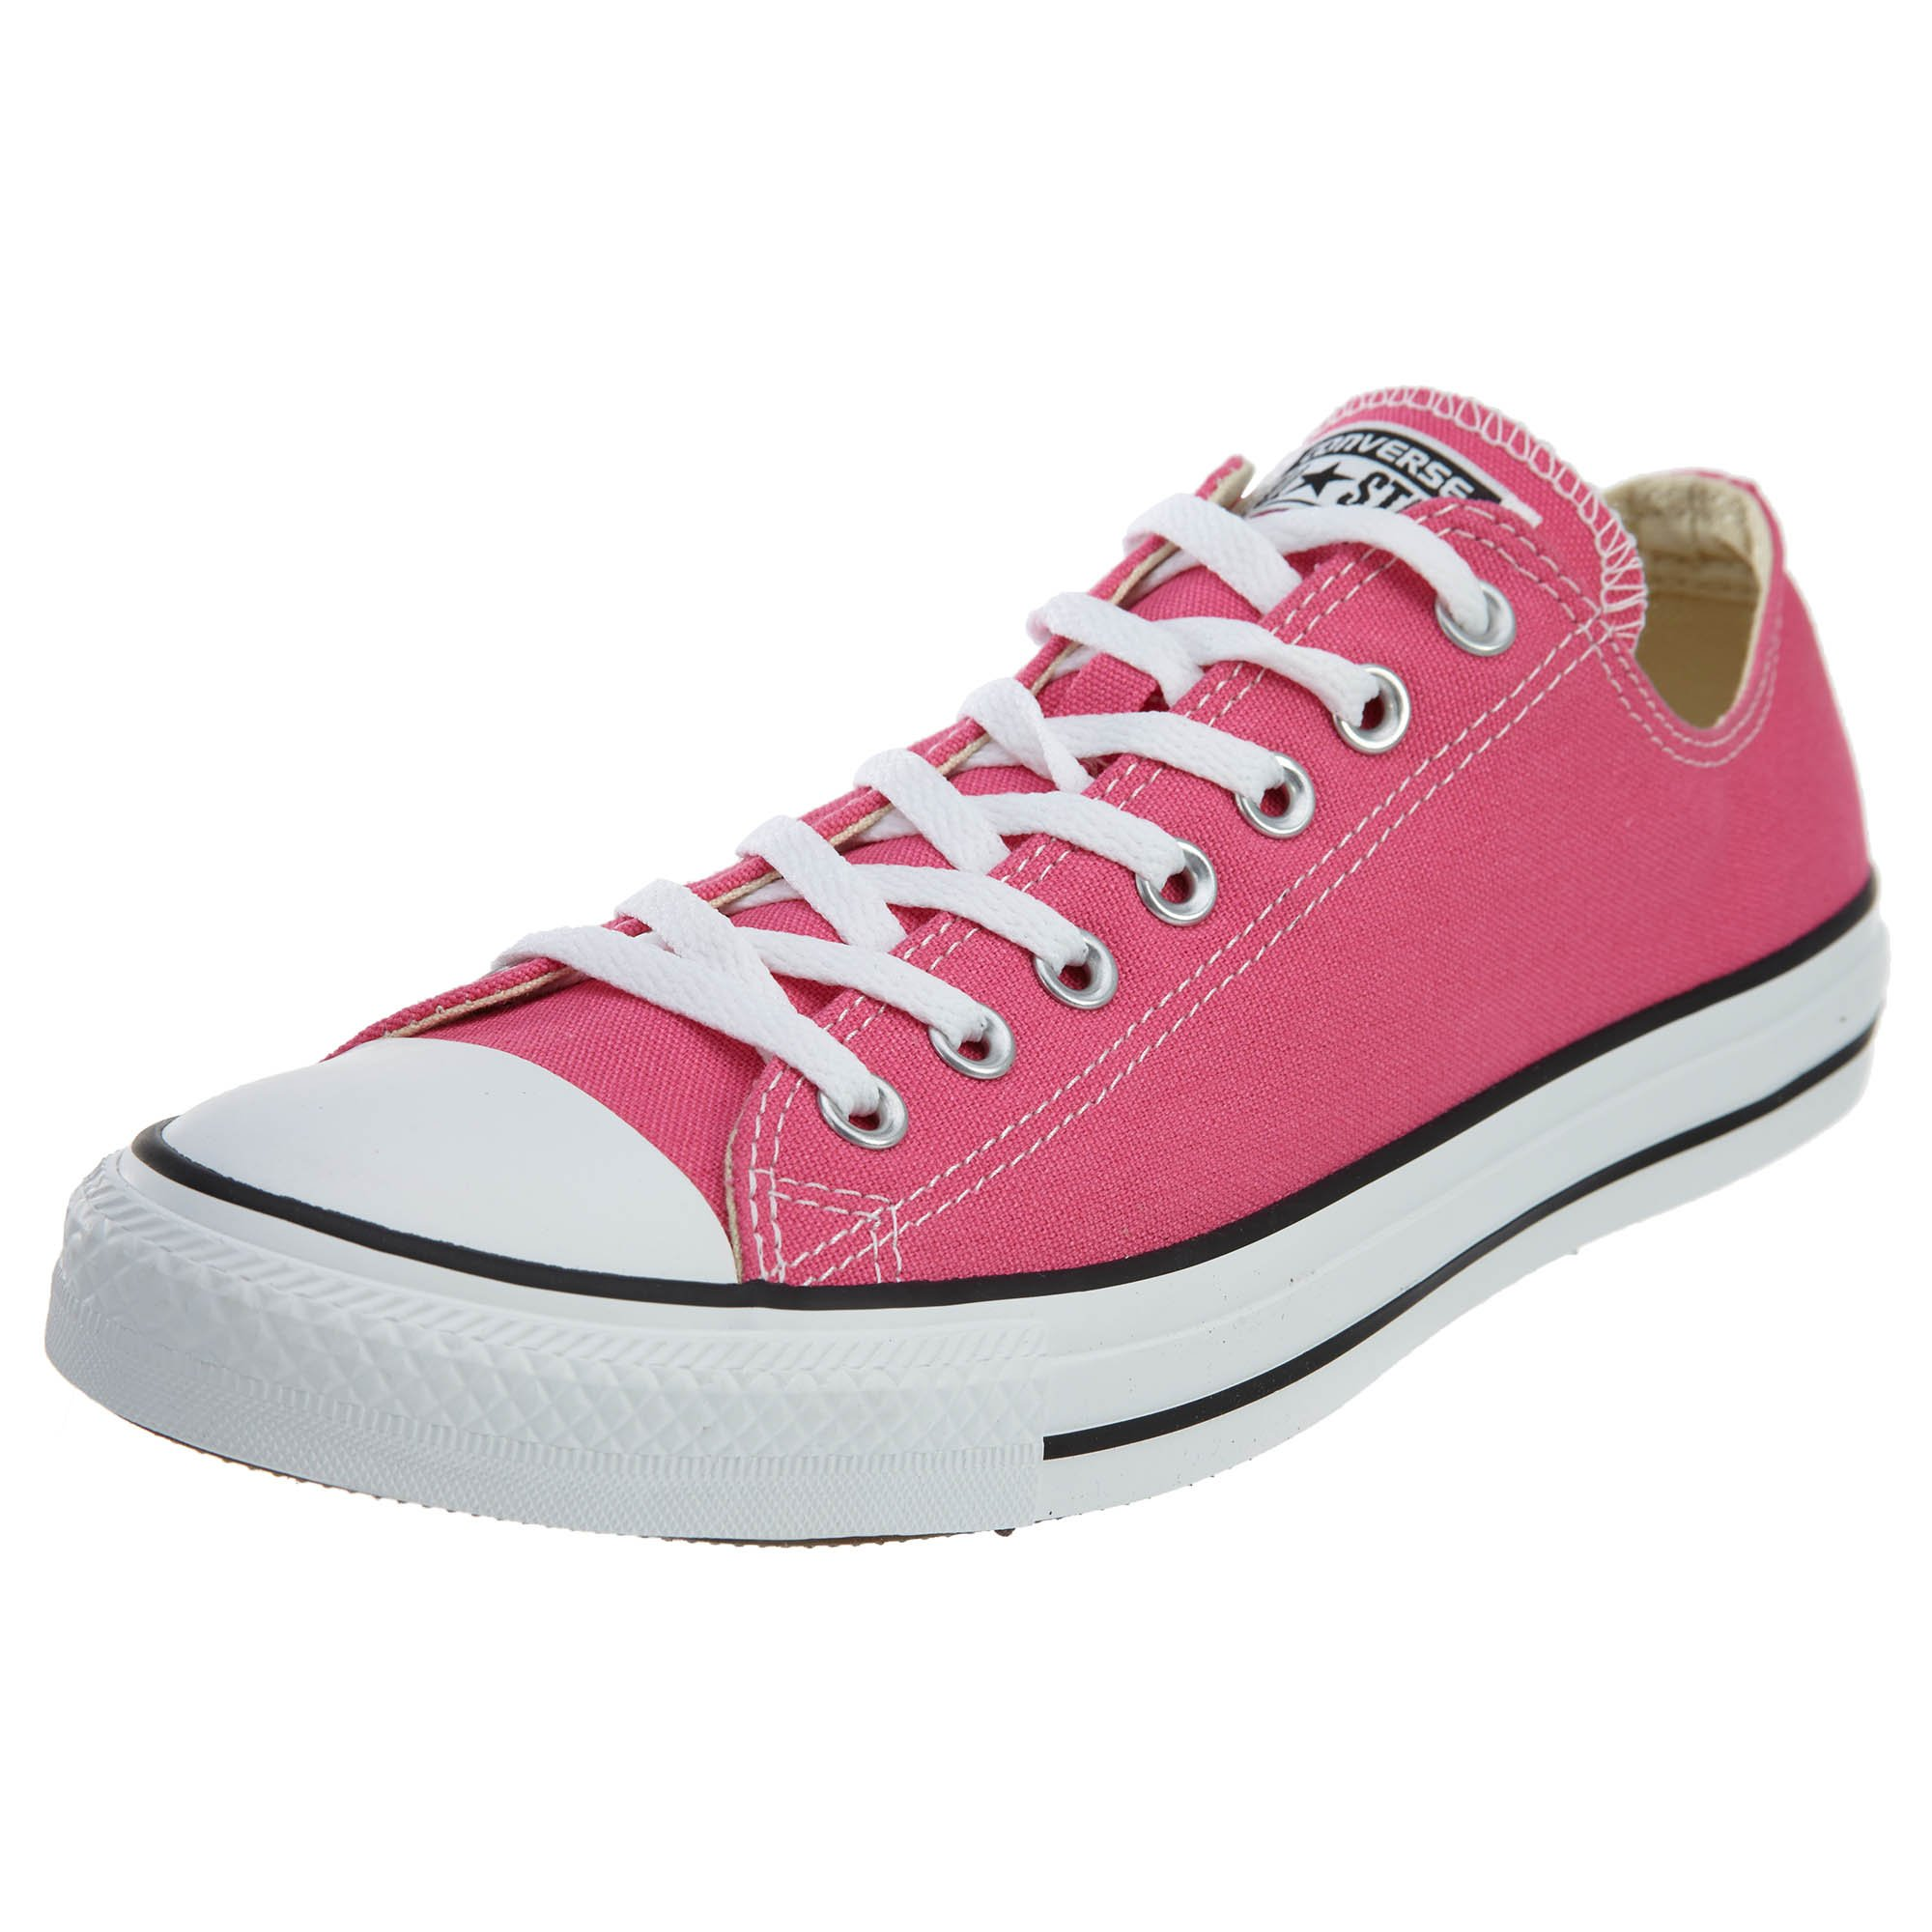 Converse Chuck Taylor All Star Seasonal OX, Pink Paper 11 M US Women / 9 M US Men